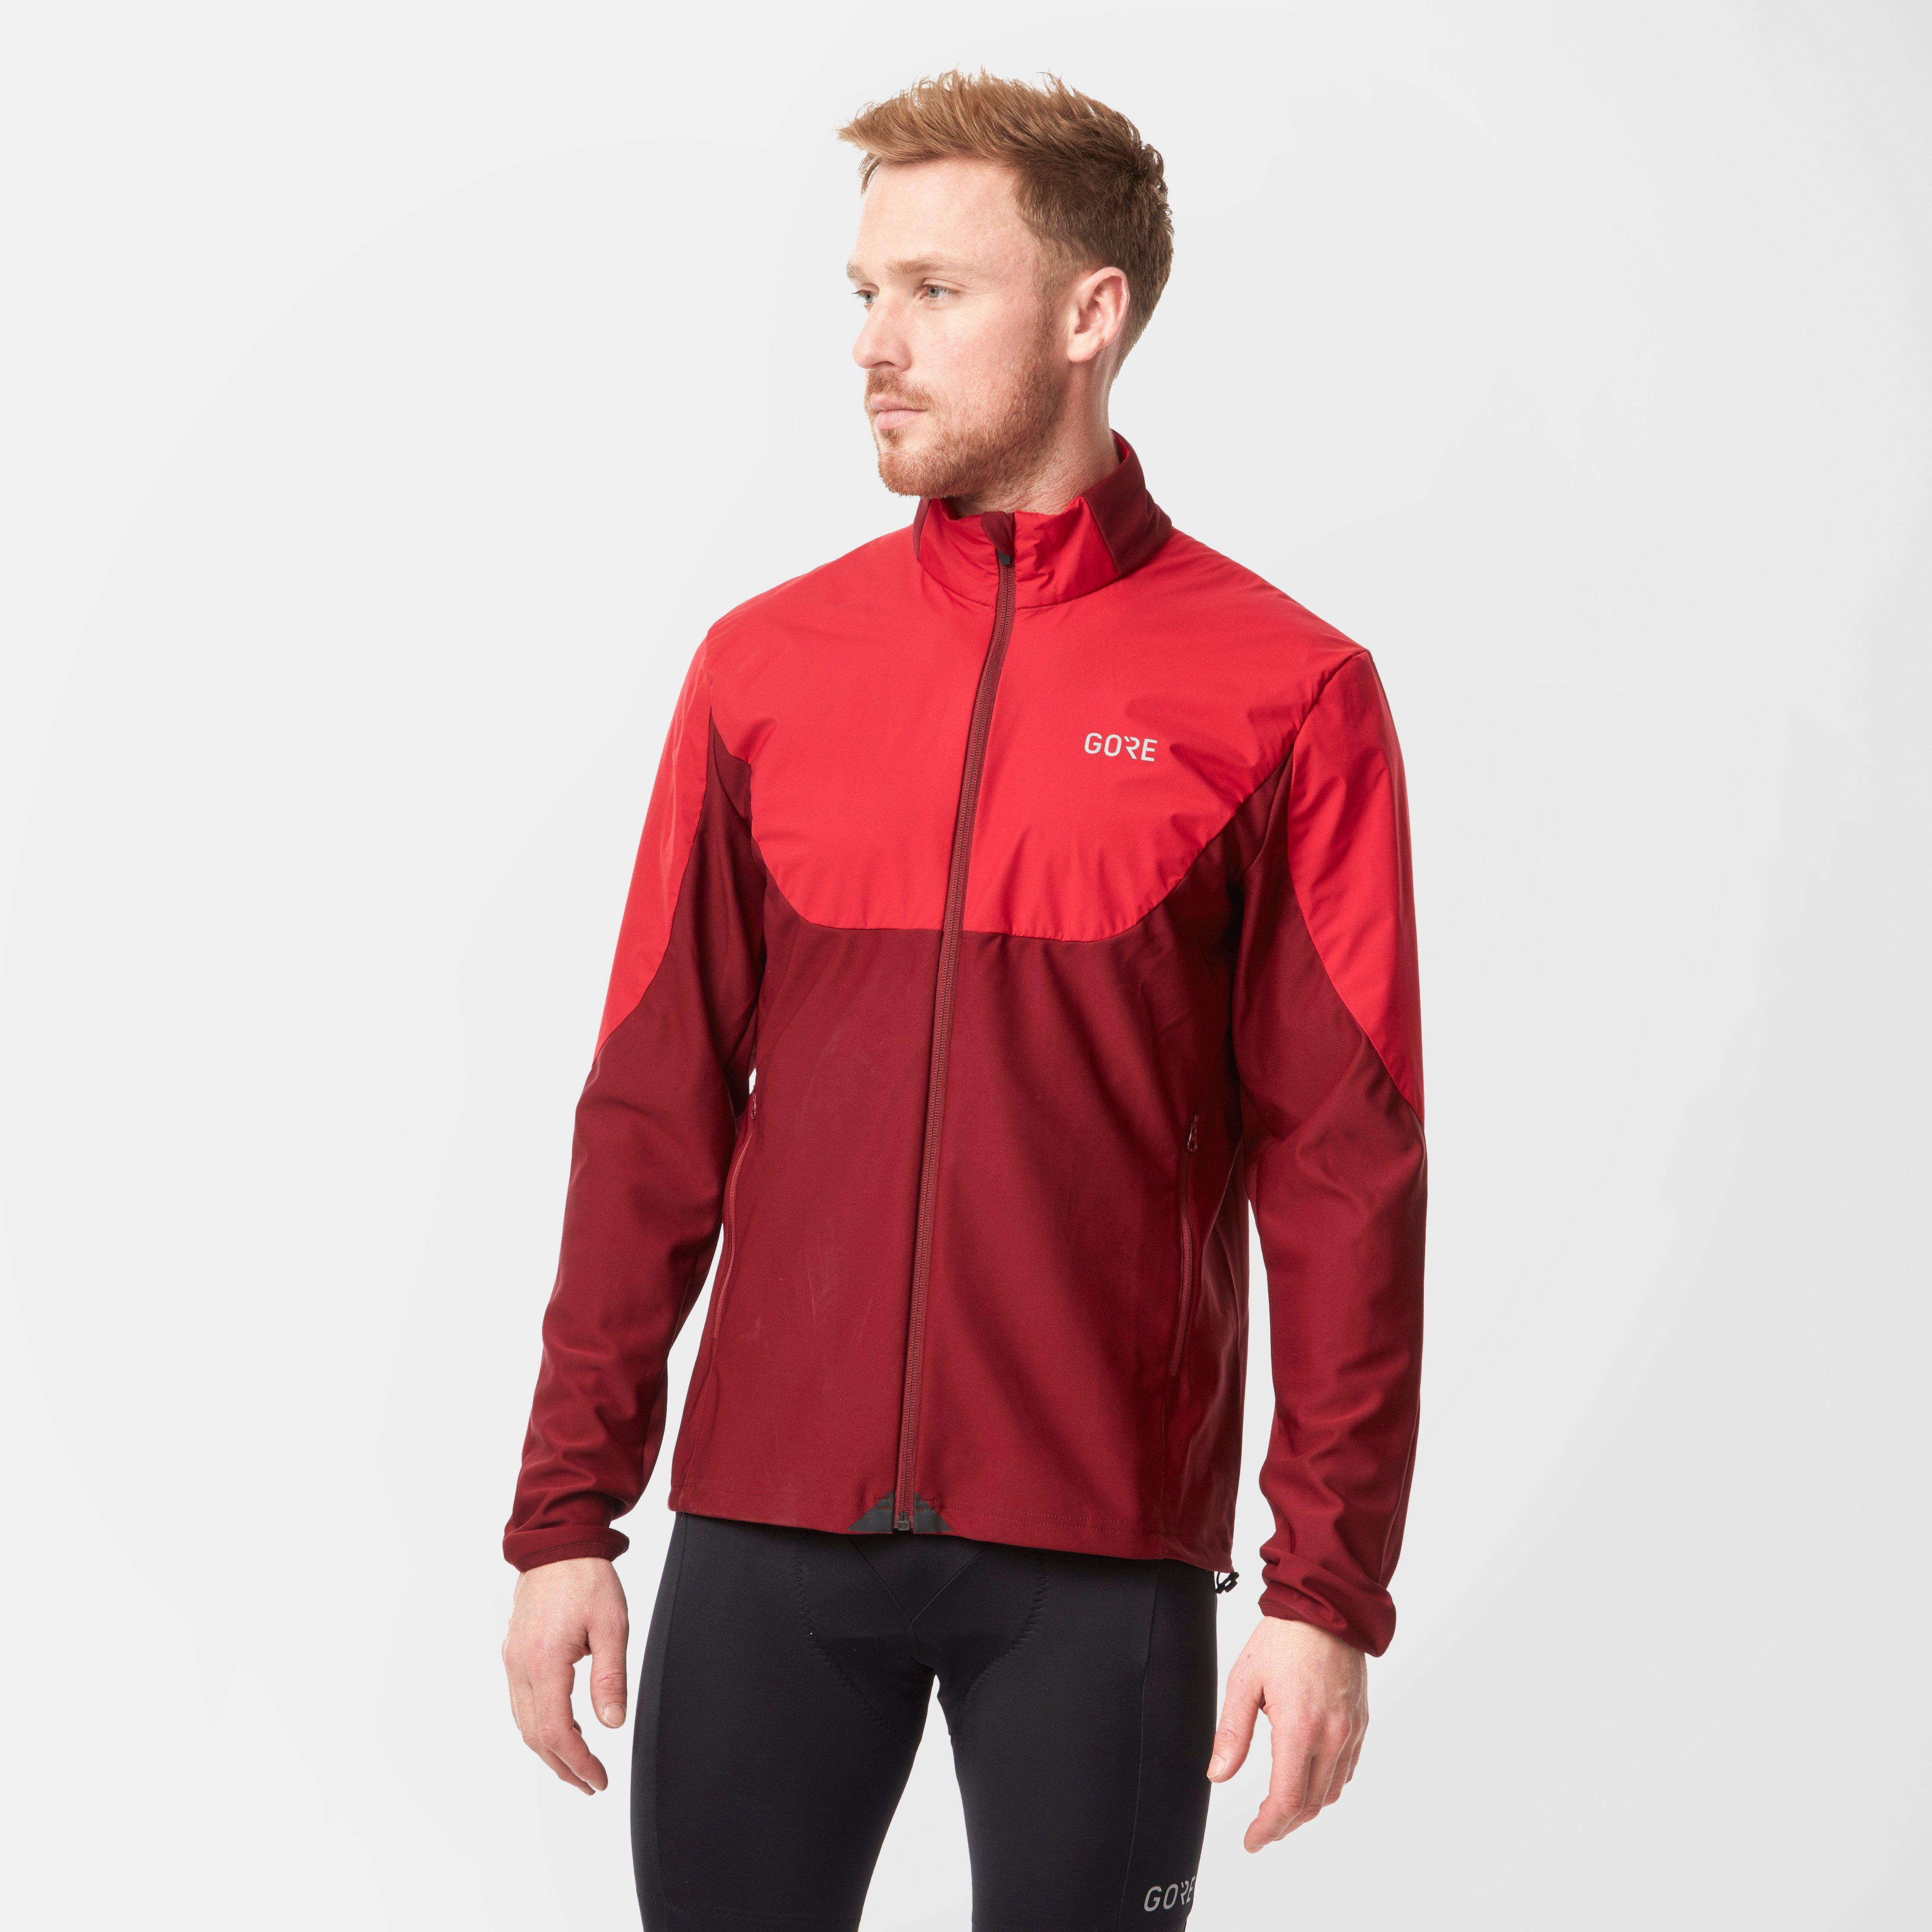 Gore Mens R5 Gore Windstopper Light Long Sleeve Shirt - Red, Red